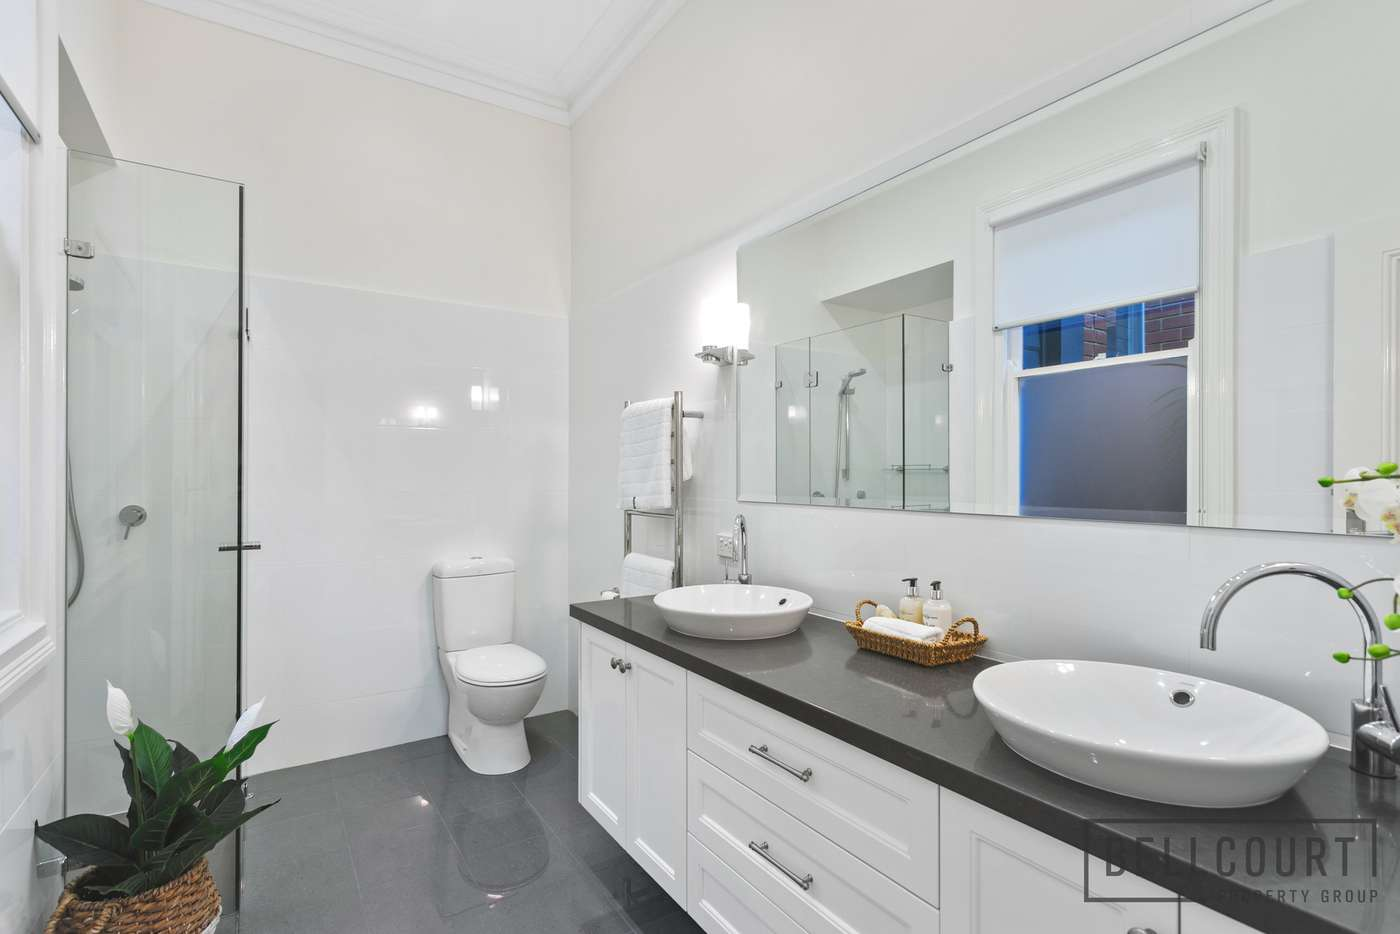 Fifth view of Homely house listing, 26 Hilda Street, Shenton Park WA 6008